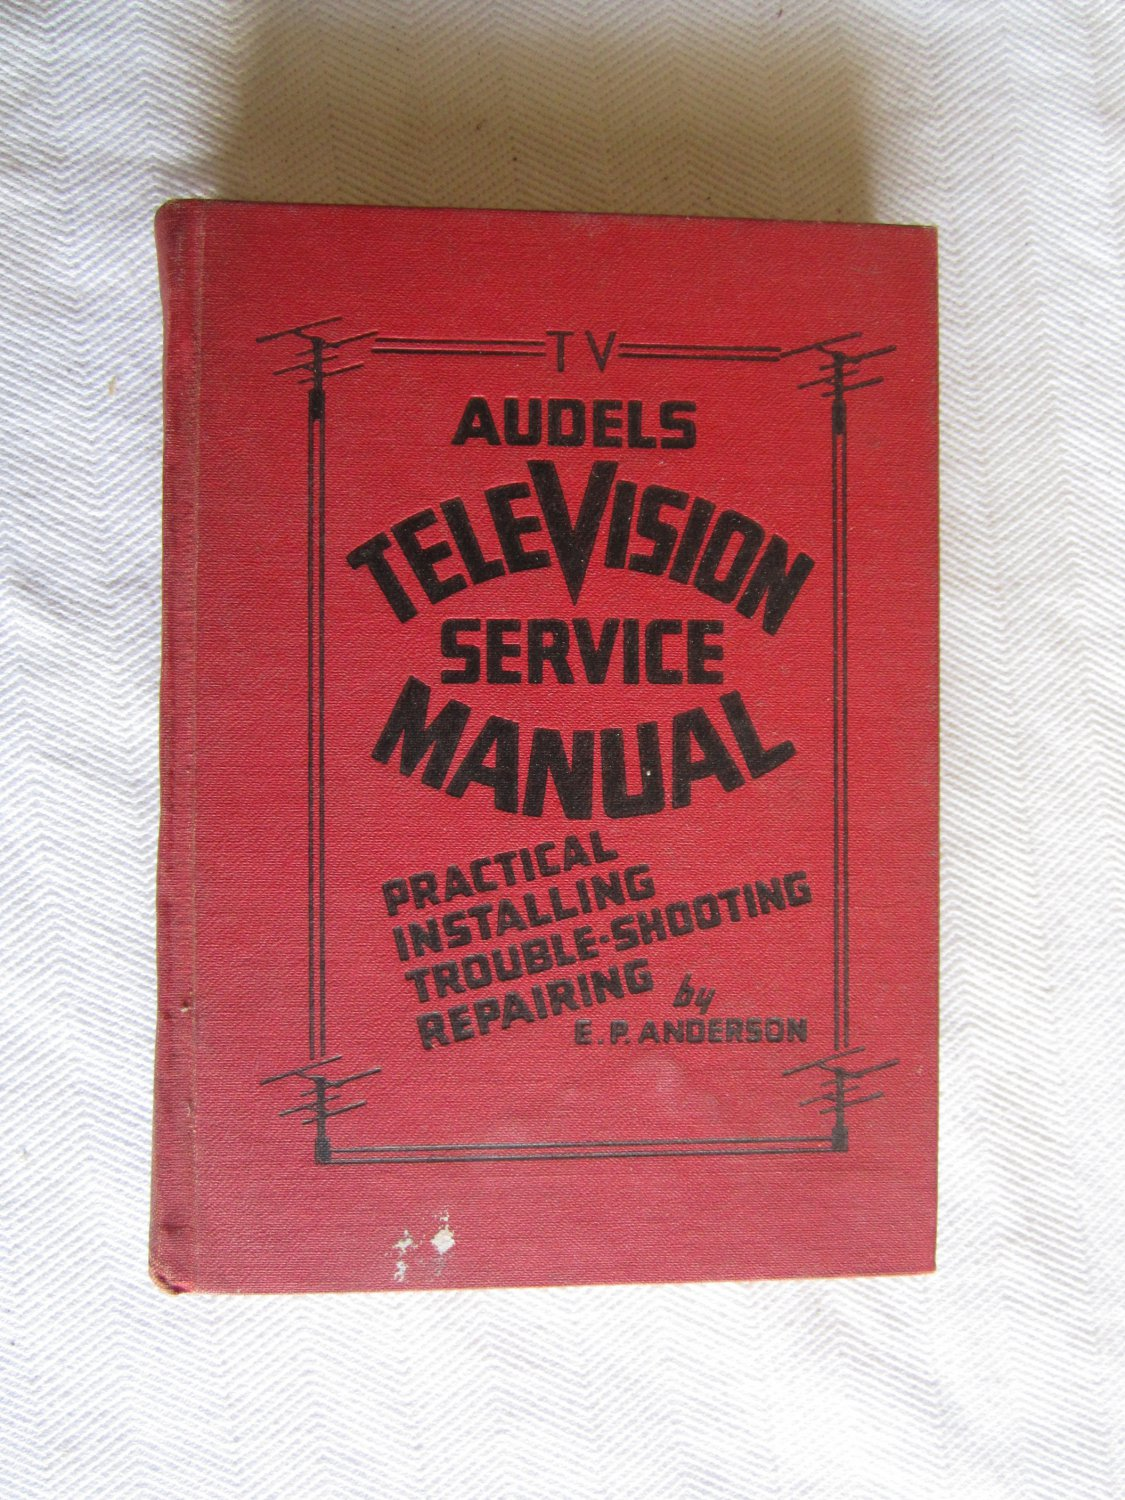 Audels Television Service Manual by E. P. Anderson (1961) (BB32)